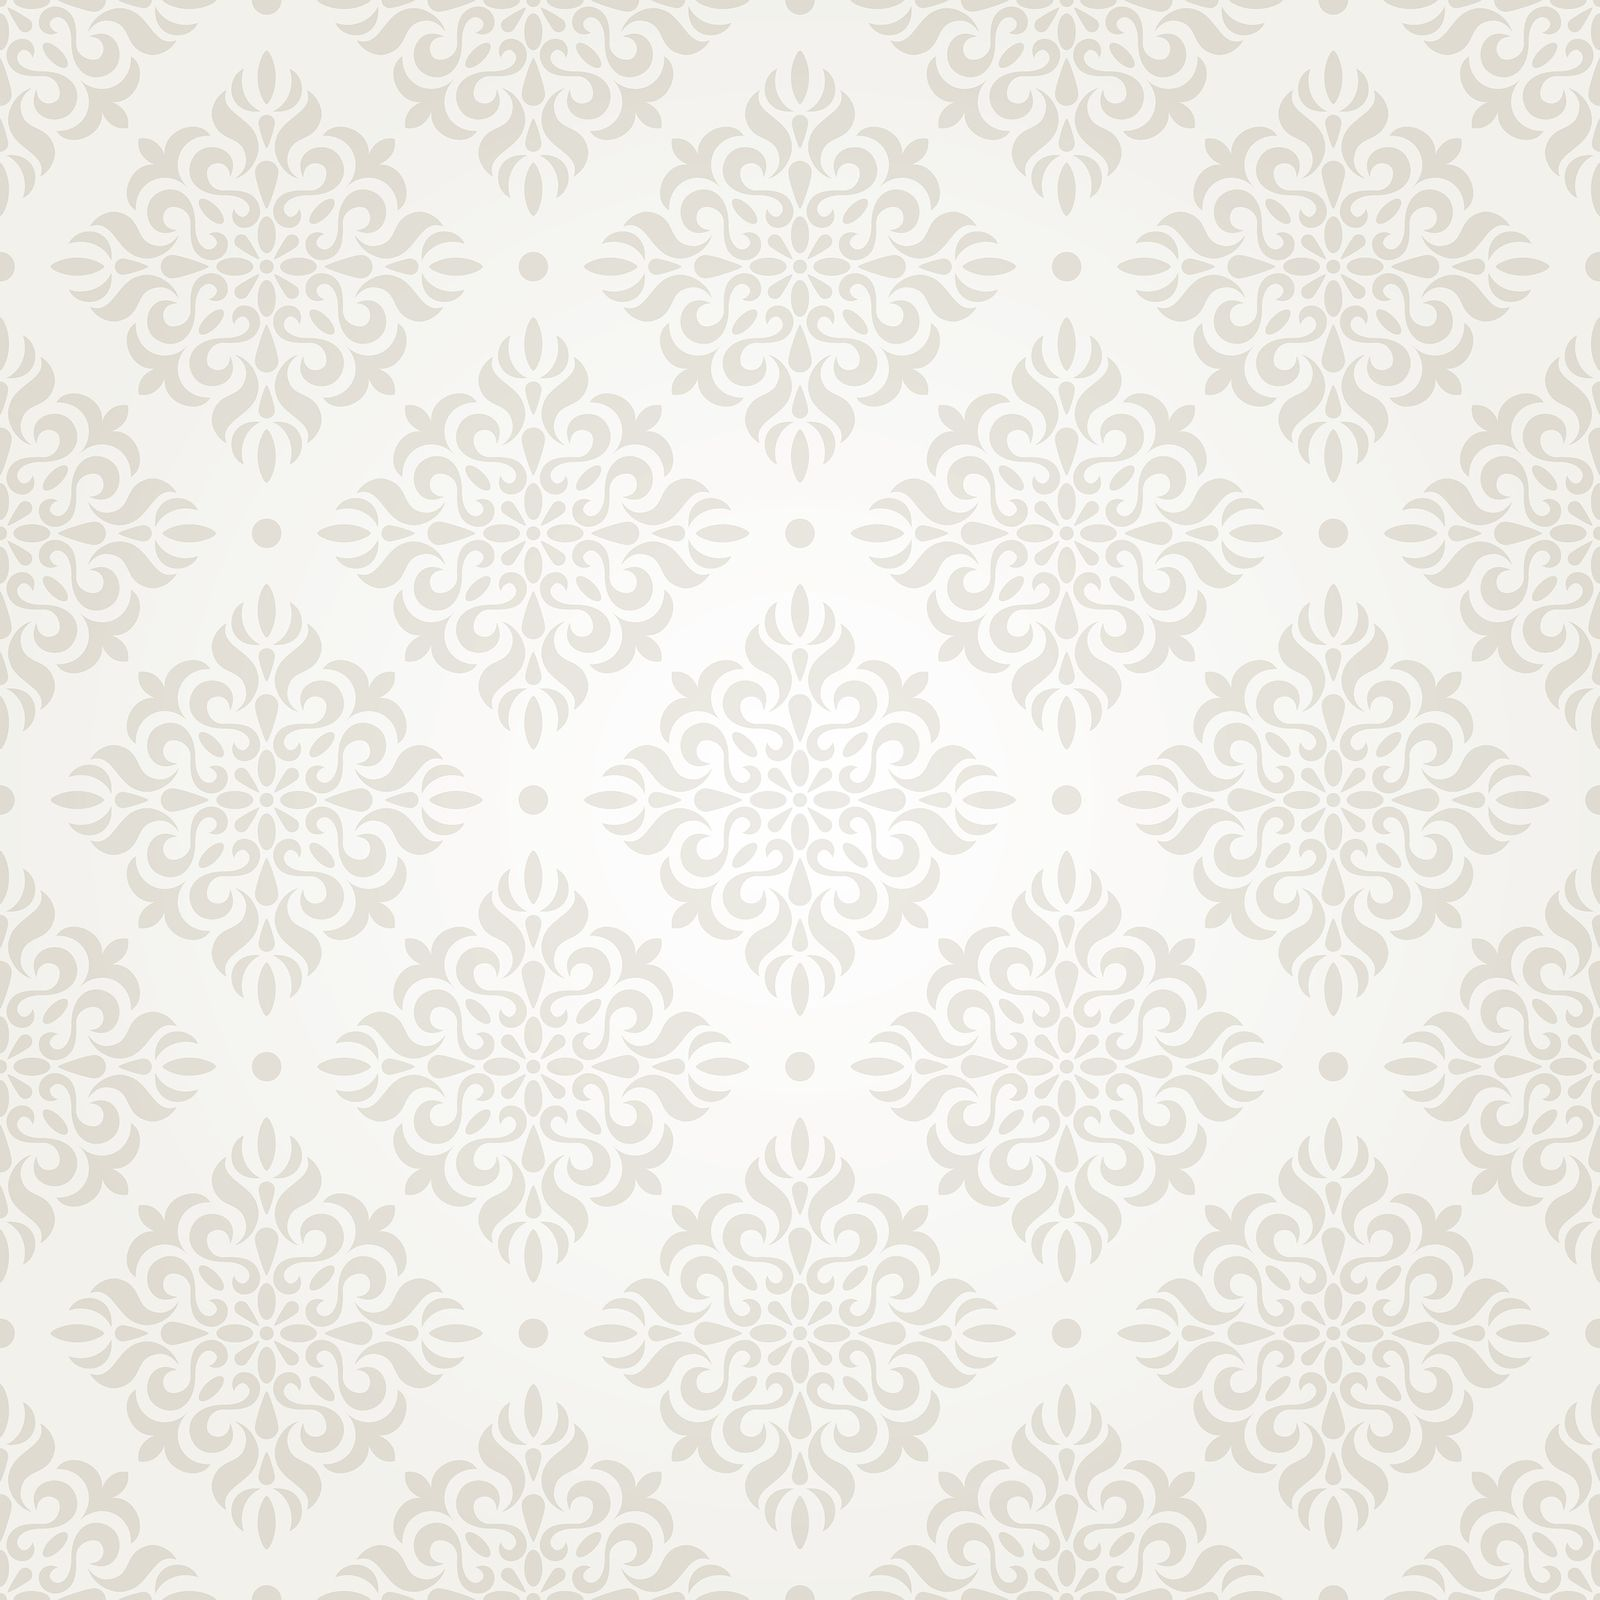 vintage wedding wallpapers top free vintage wedding backgrounds wallpaperaccess vintage wedding wallpapers top free